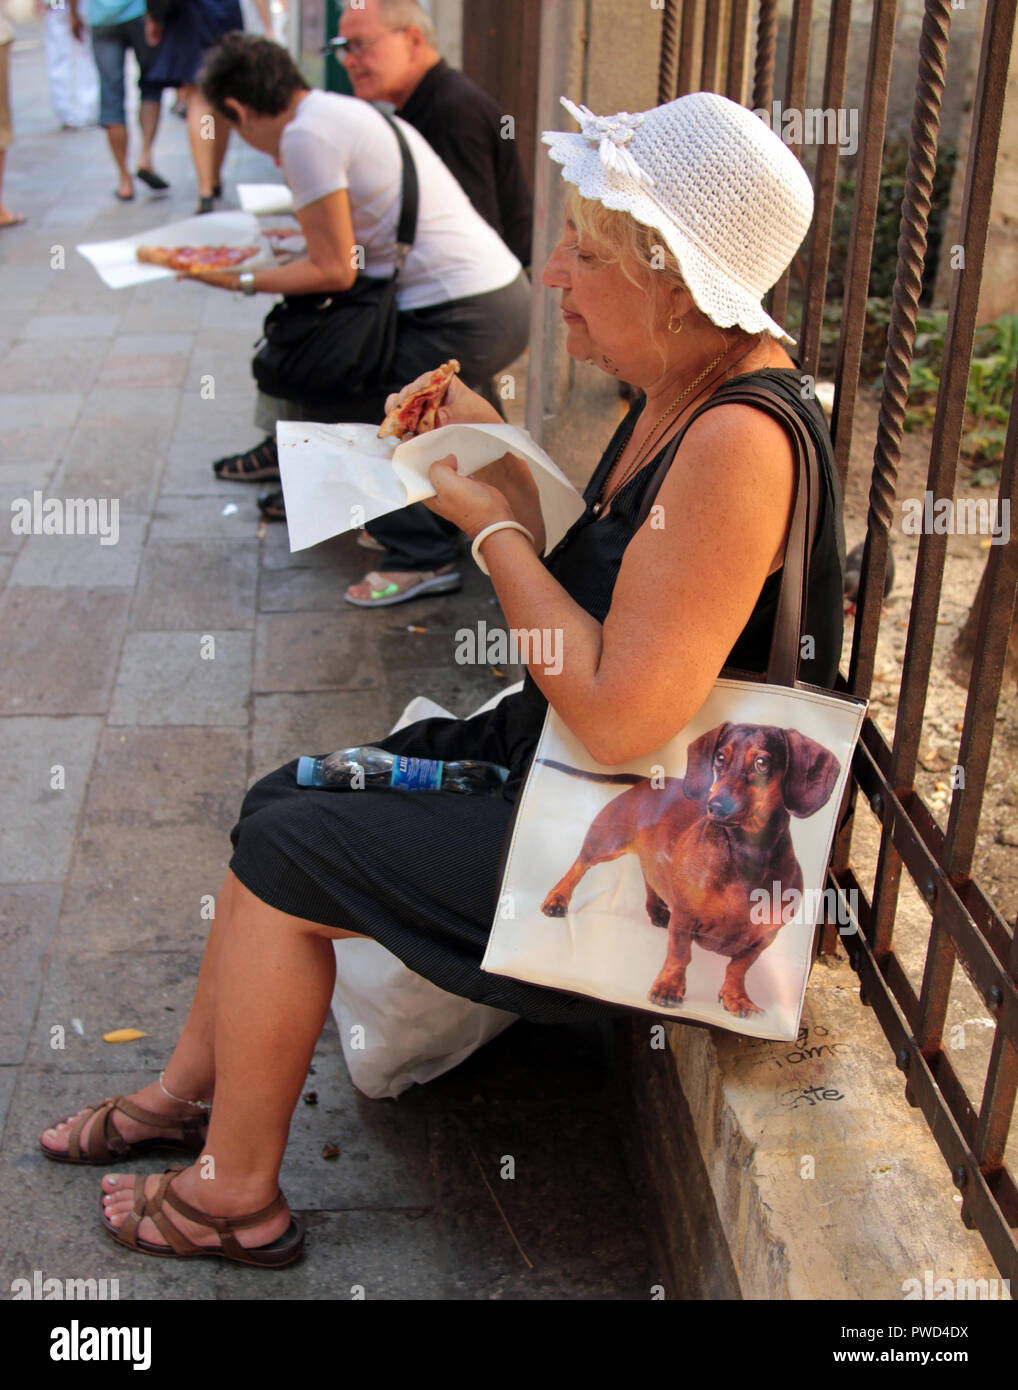 A woman is sitting on a wall enjoying a slice of pizza. She has her doggy bag ready if she cannot finish the slice. - Stock Image